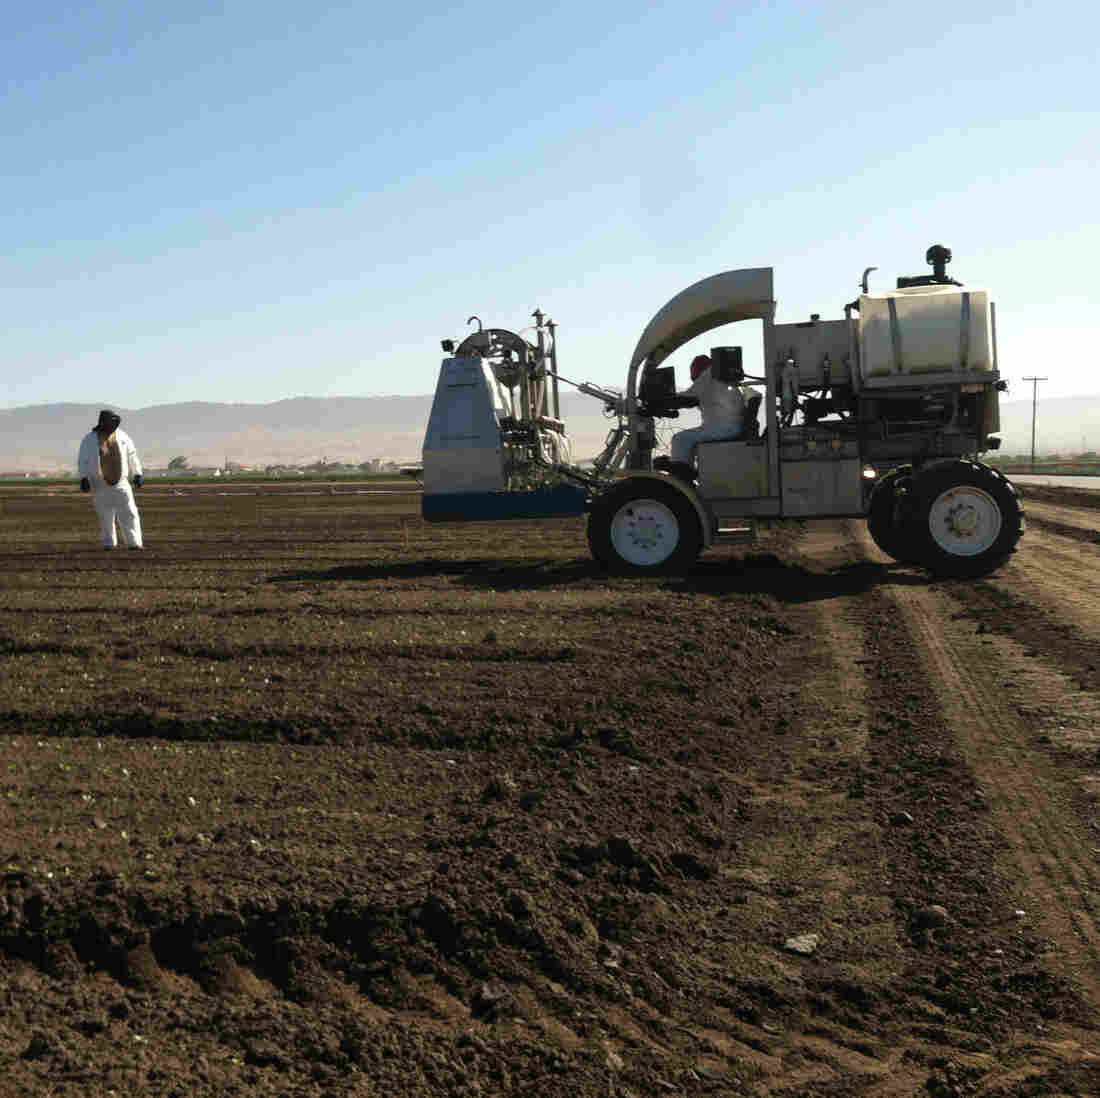 A lettuce thinner  manufactured by Ramsay Highlander removes excess seedlings from the field so that others have room to grow. Just one worker is required to operate the machine.